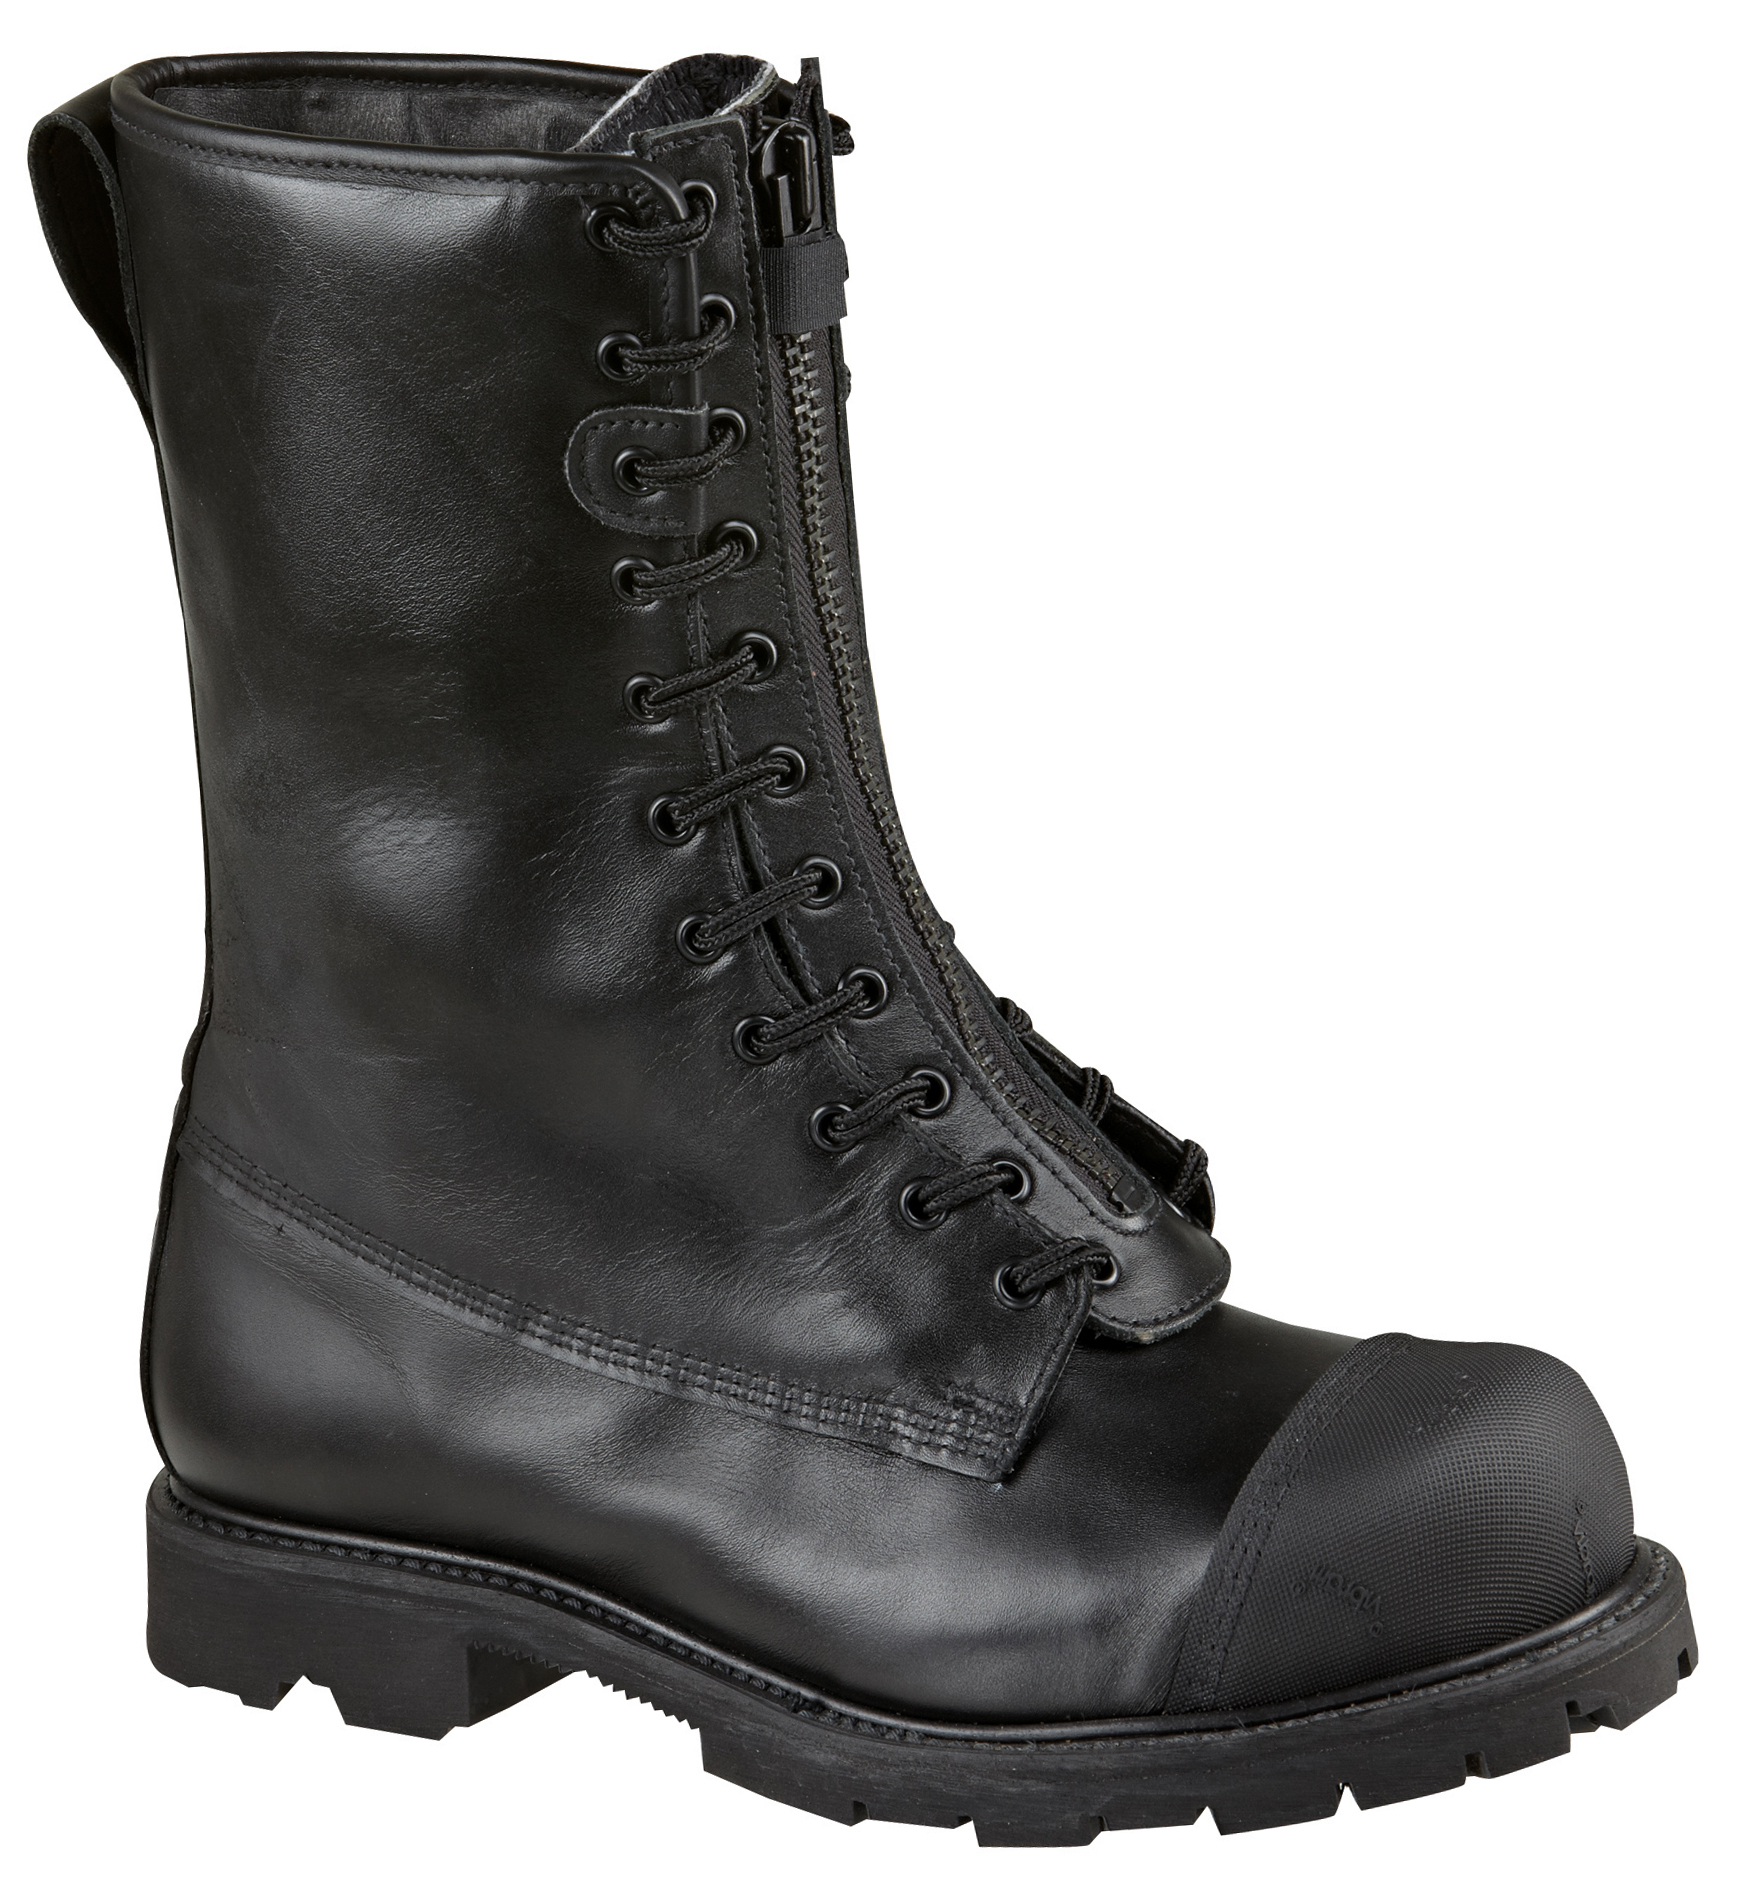 "Thorogood Men's Lace Up Zip Resistant Thorogood 10"" Wildland Fire Boot Black Leather Wide (EE) 804-6391 at Sears.com"